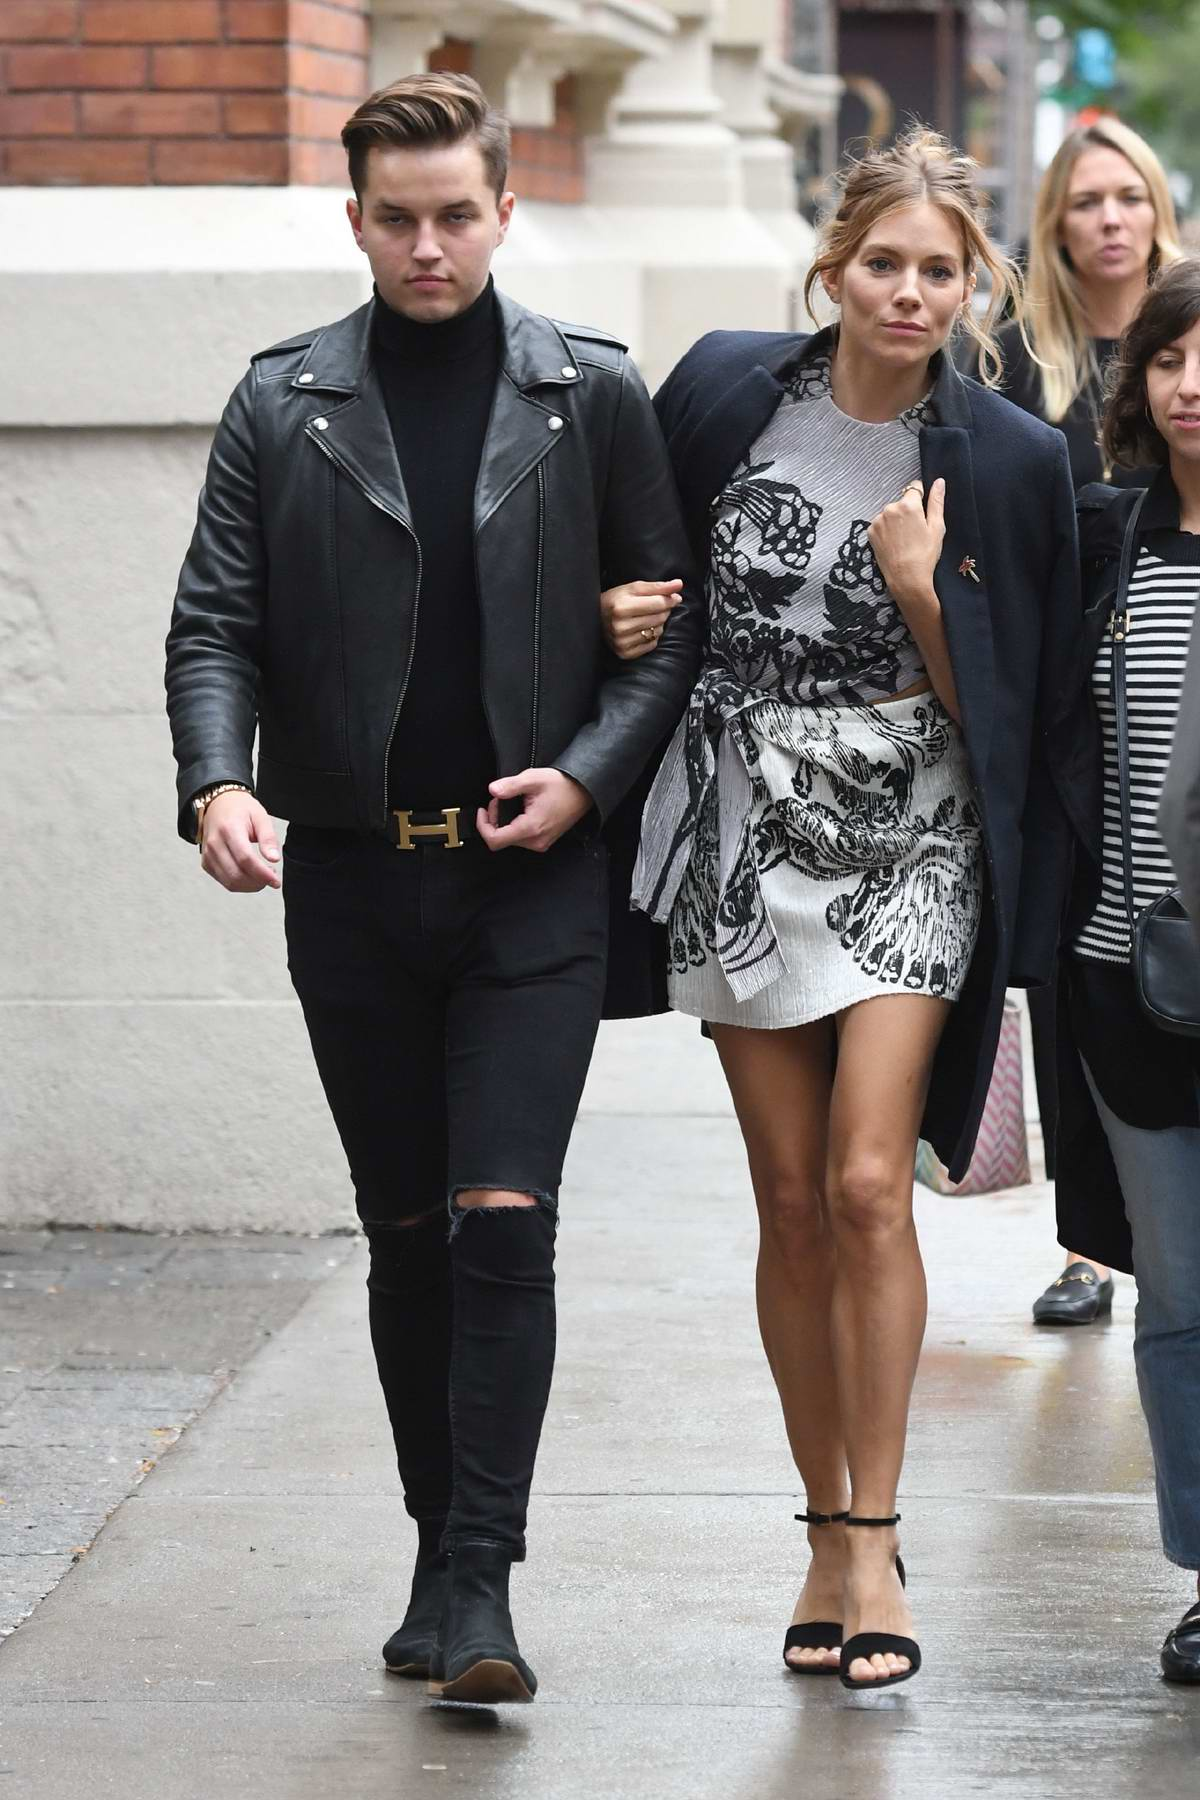 Sienna Miller enjoys a stroll with a friend during during the Toronto International Film Festival (TIFF 2018) in Toronto, Canada